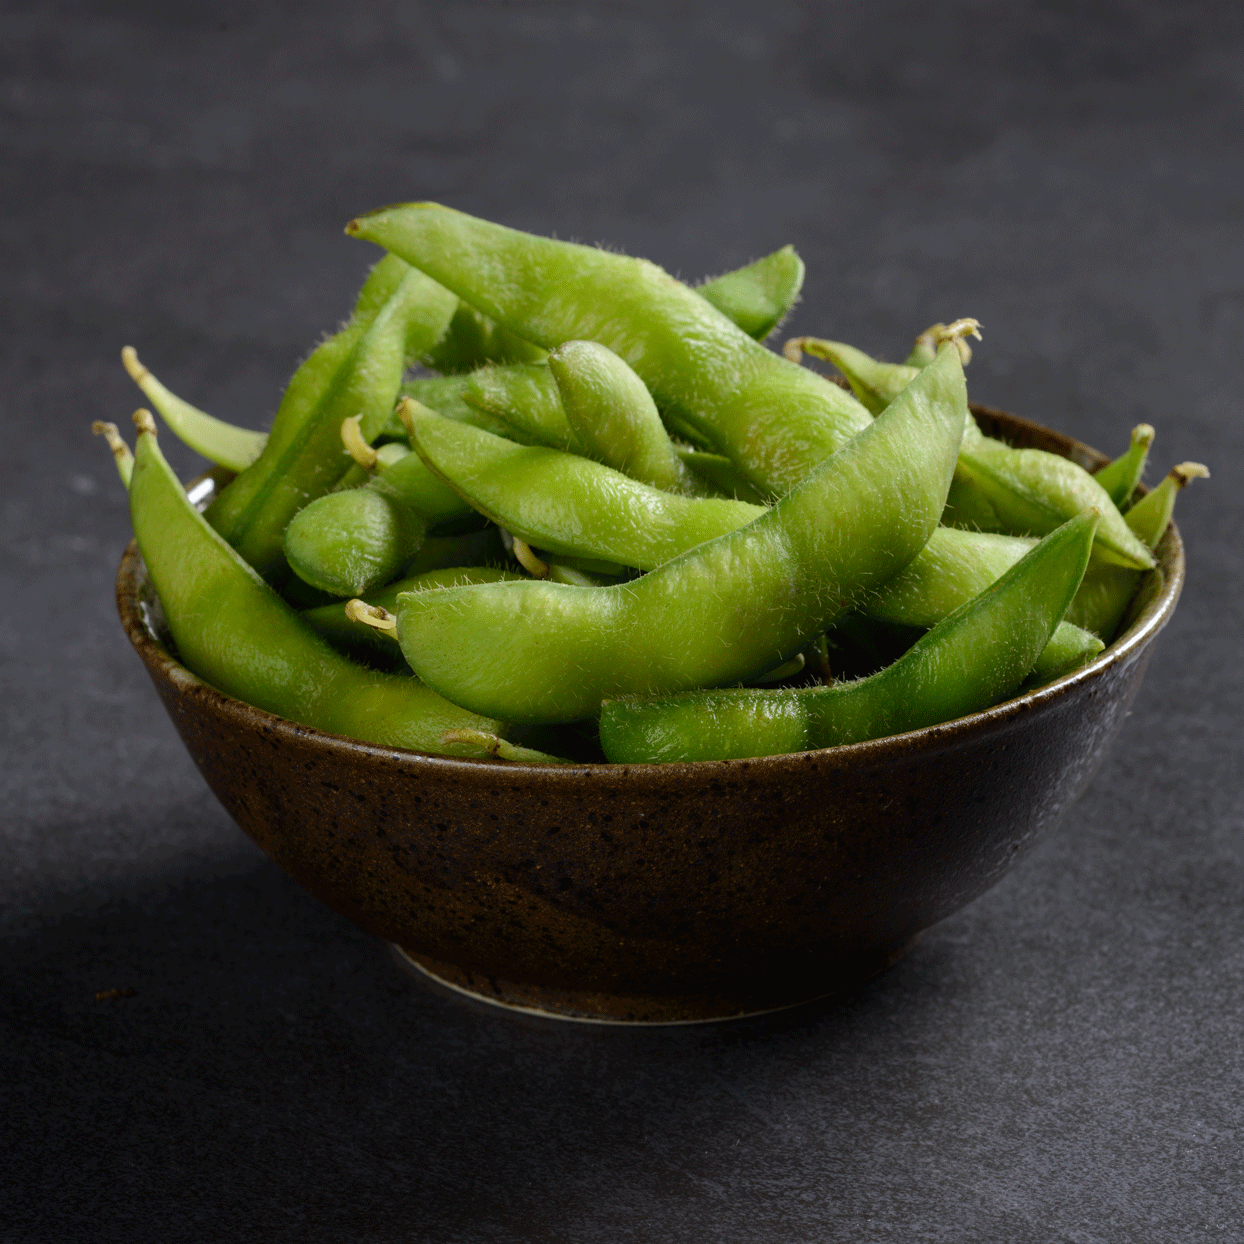 Is Soy Good for You? Here's What the Science Says